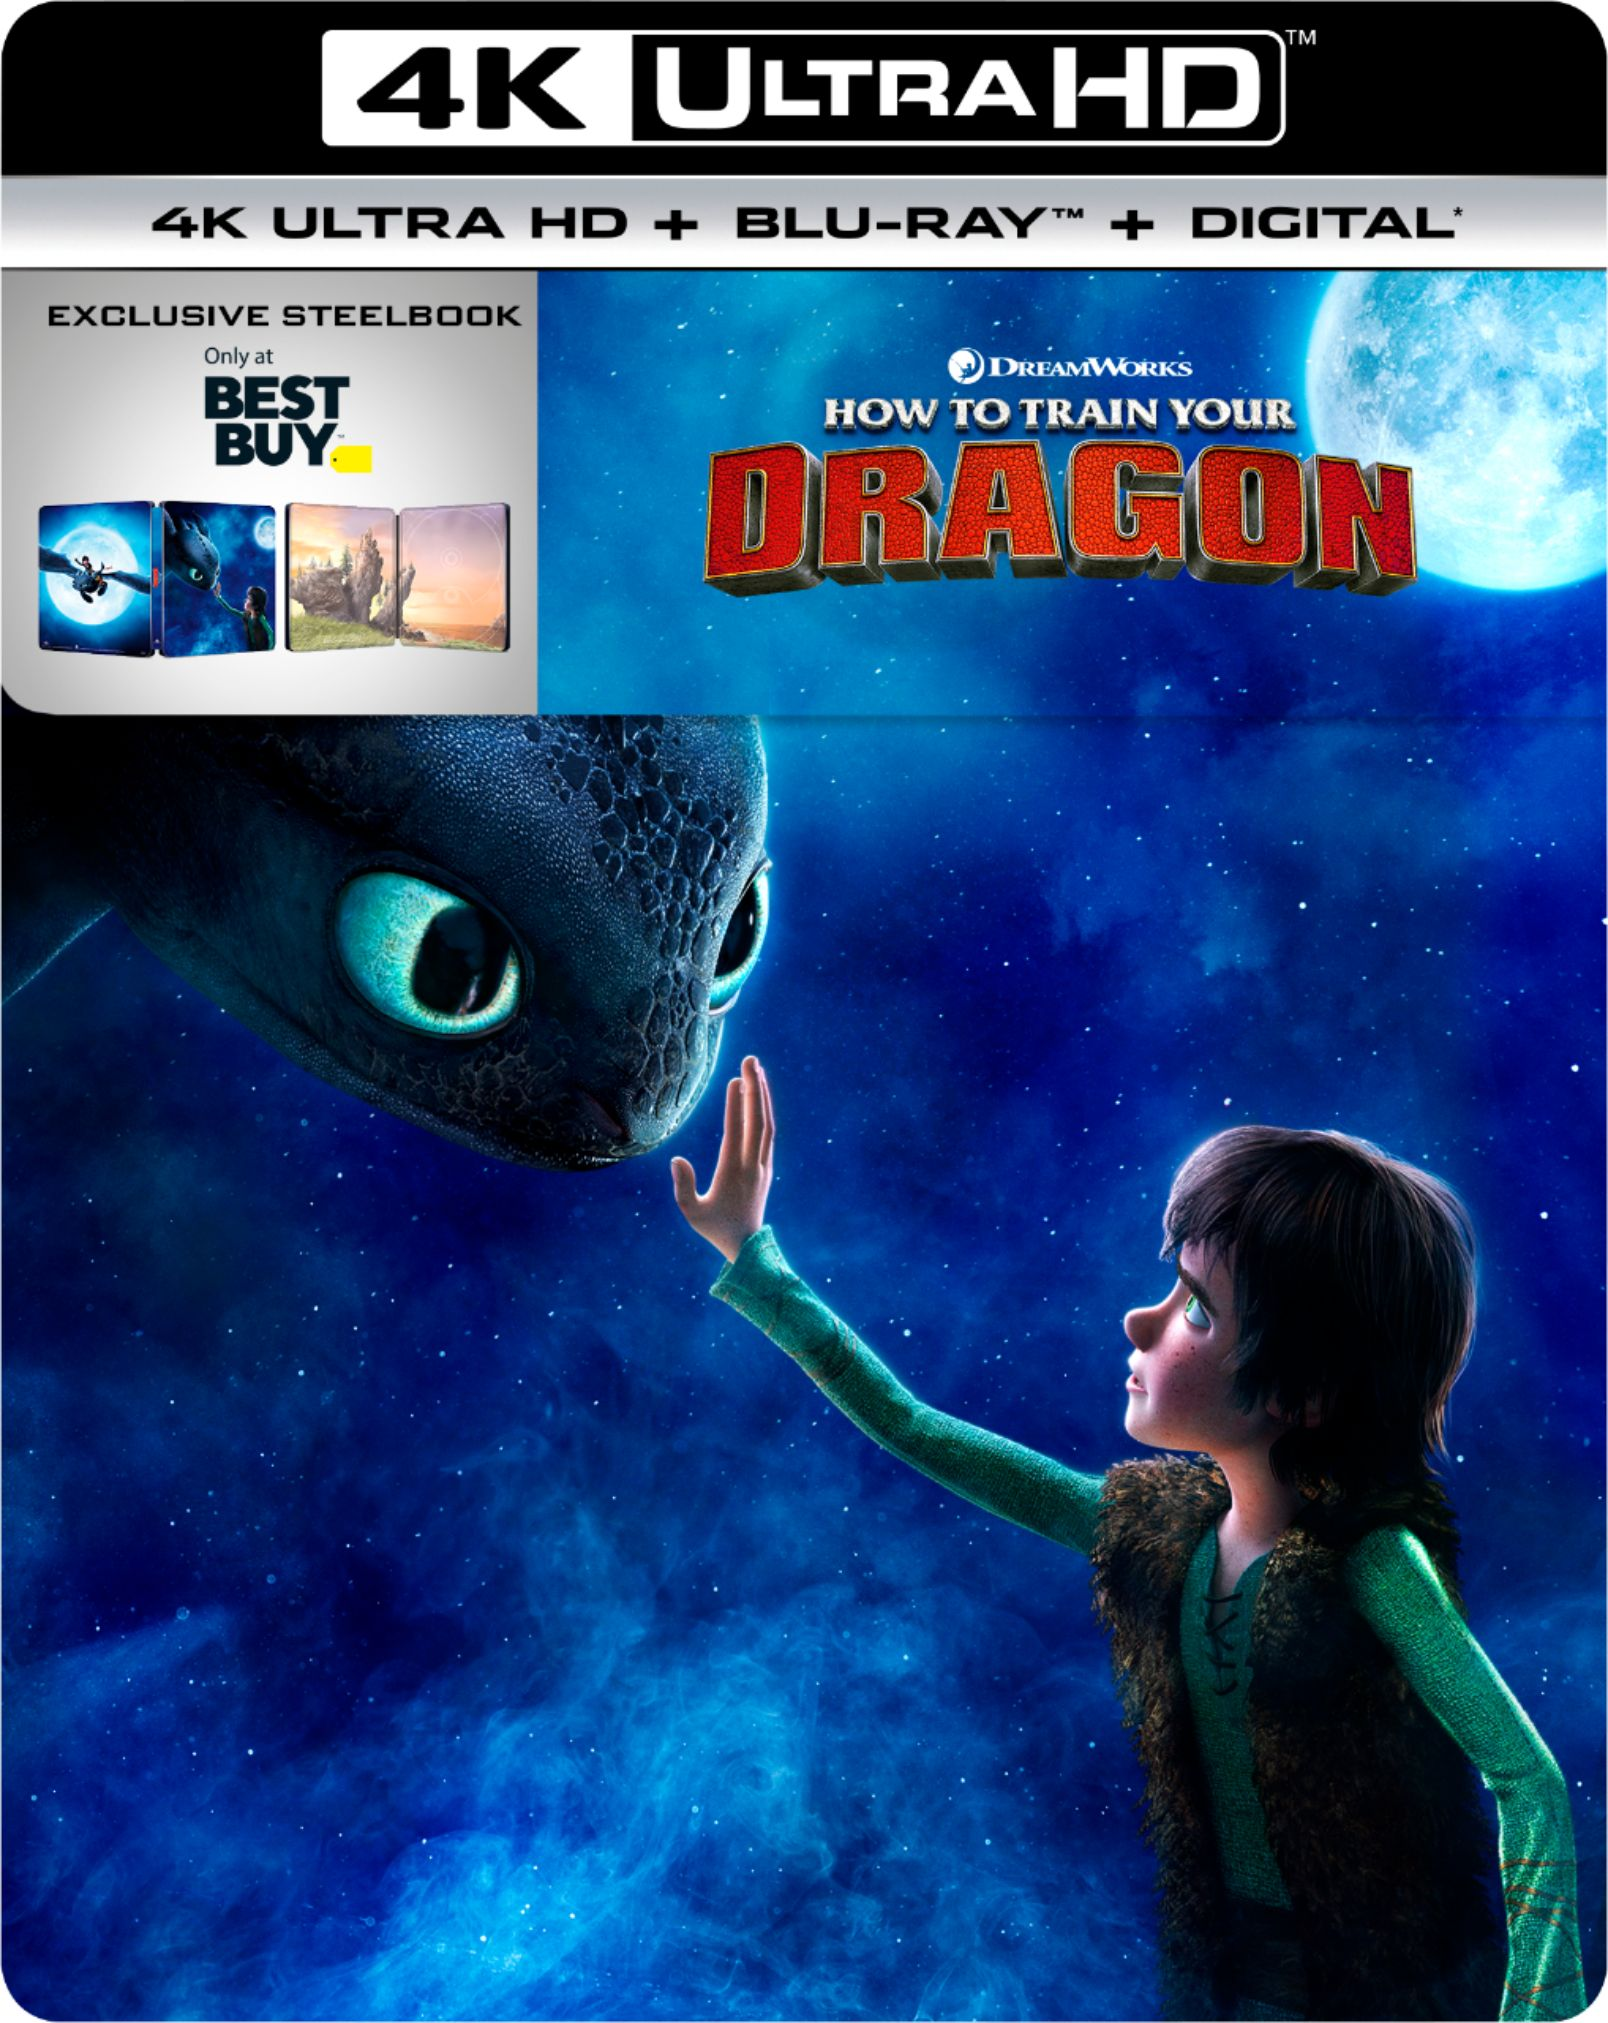 how to train your dragon the hidden world 4K blu ray steelbook